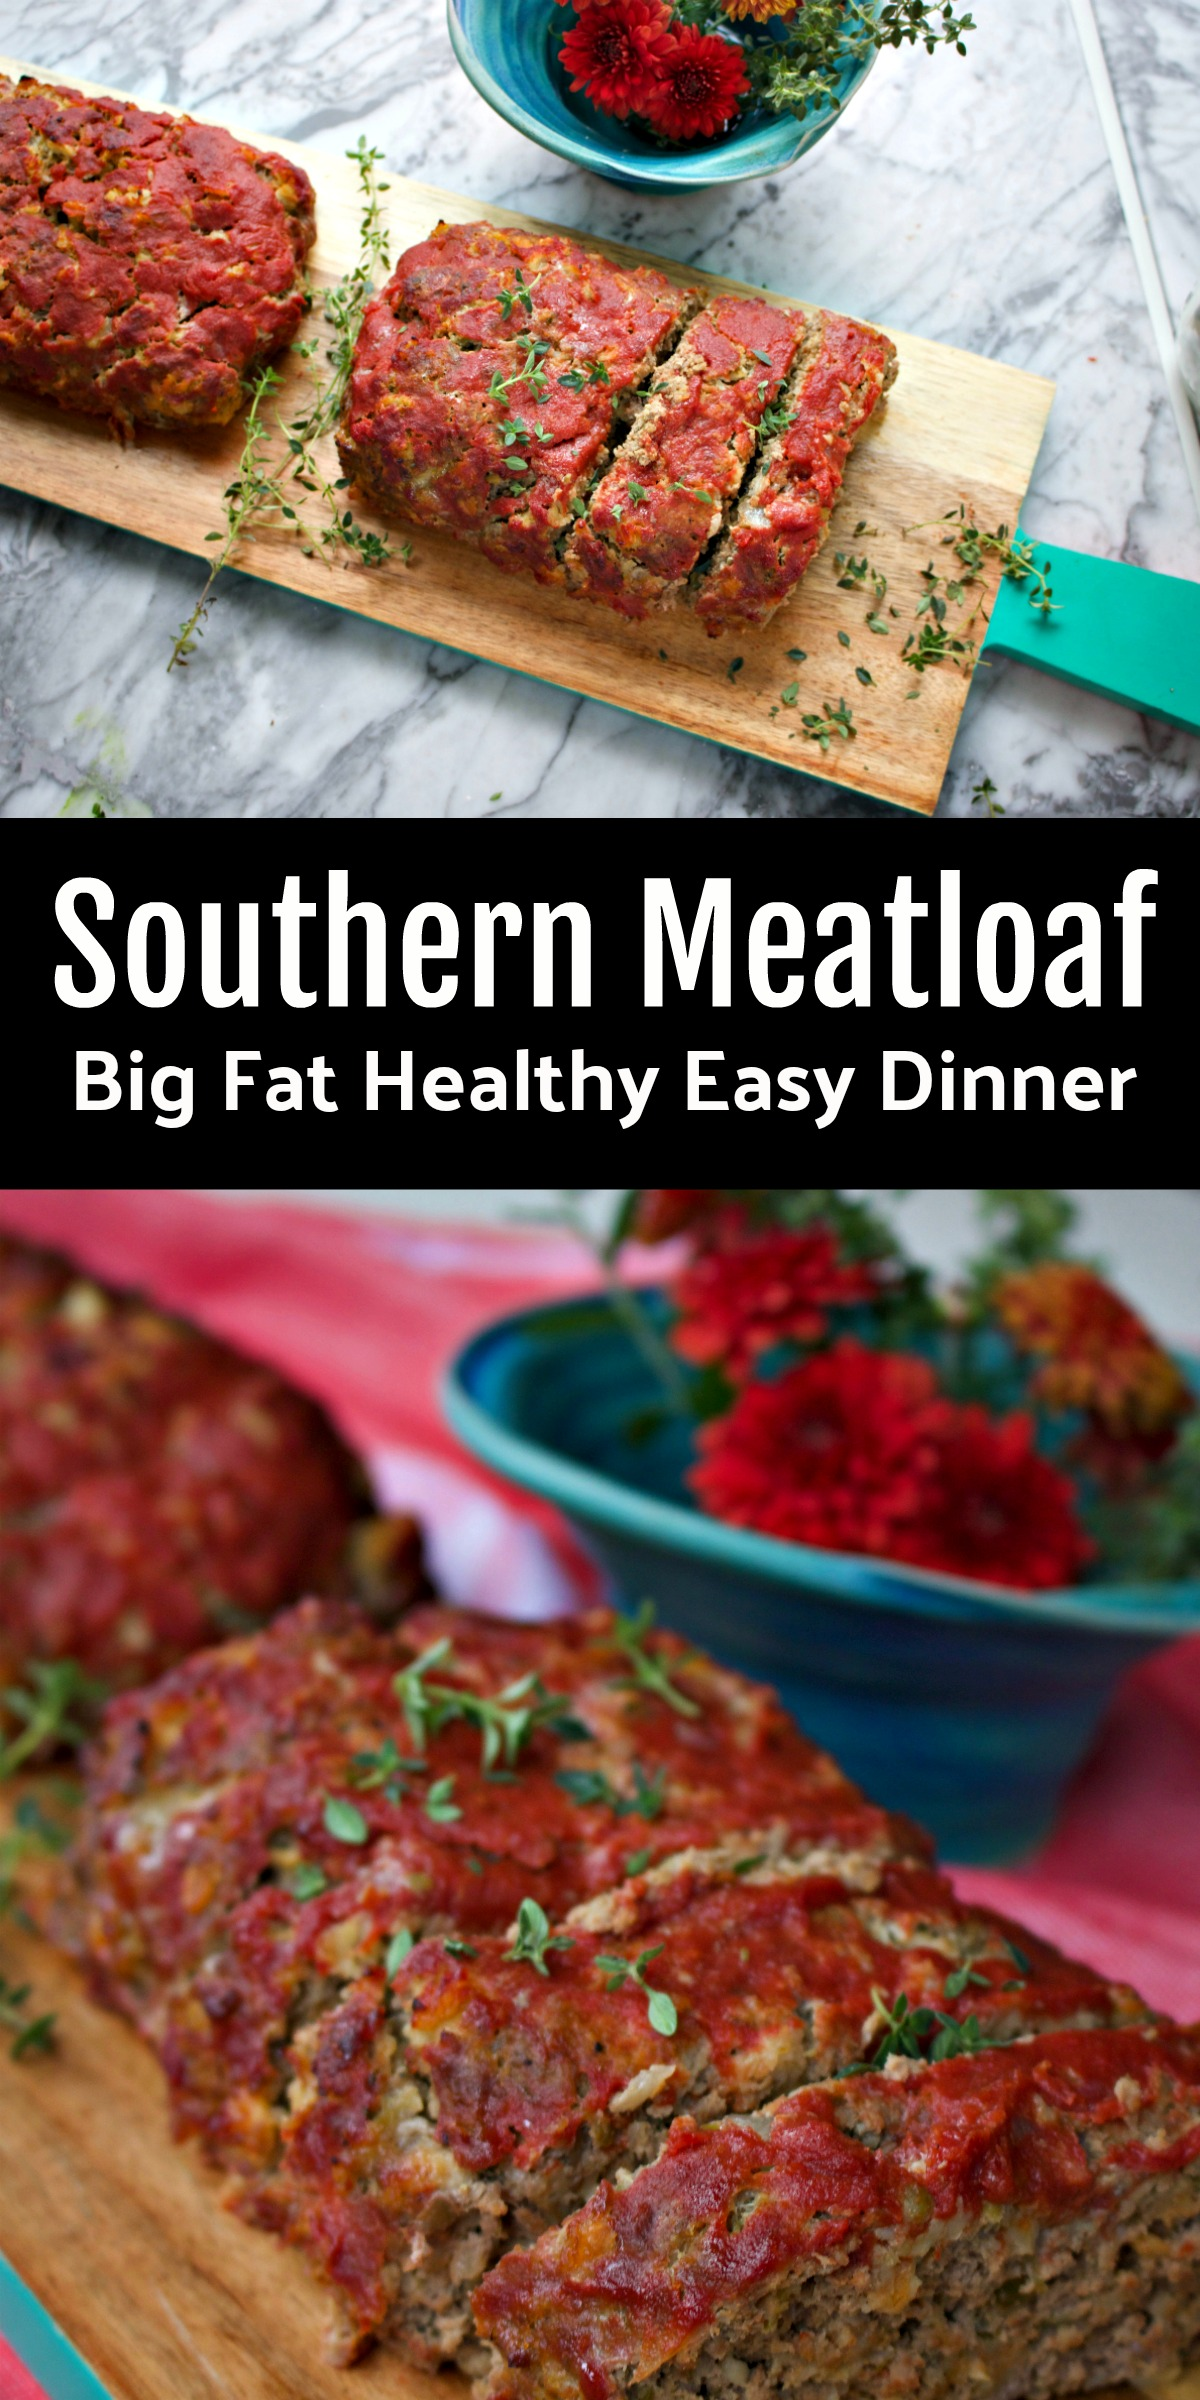 Southern Meatloaf made with sauteed veggies, oats and is old family recipe. Makes great leftovers too. via @angelaroberts